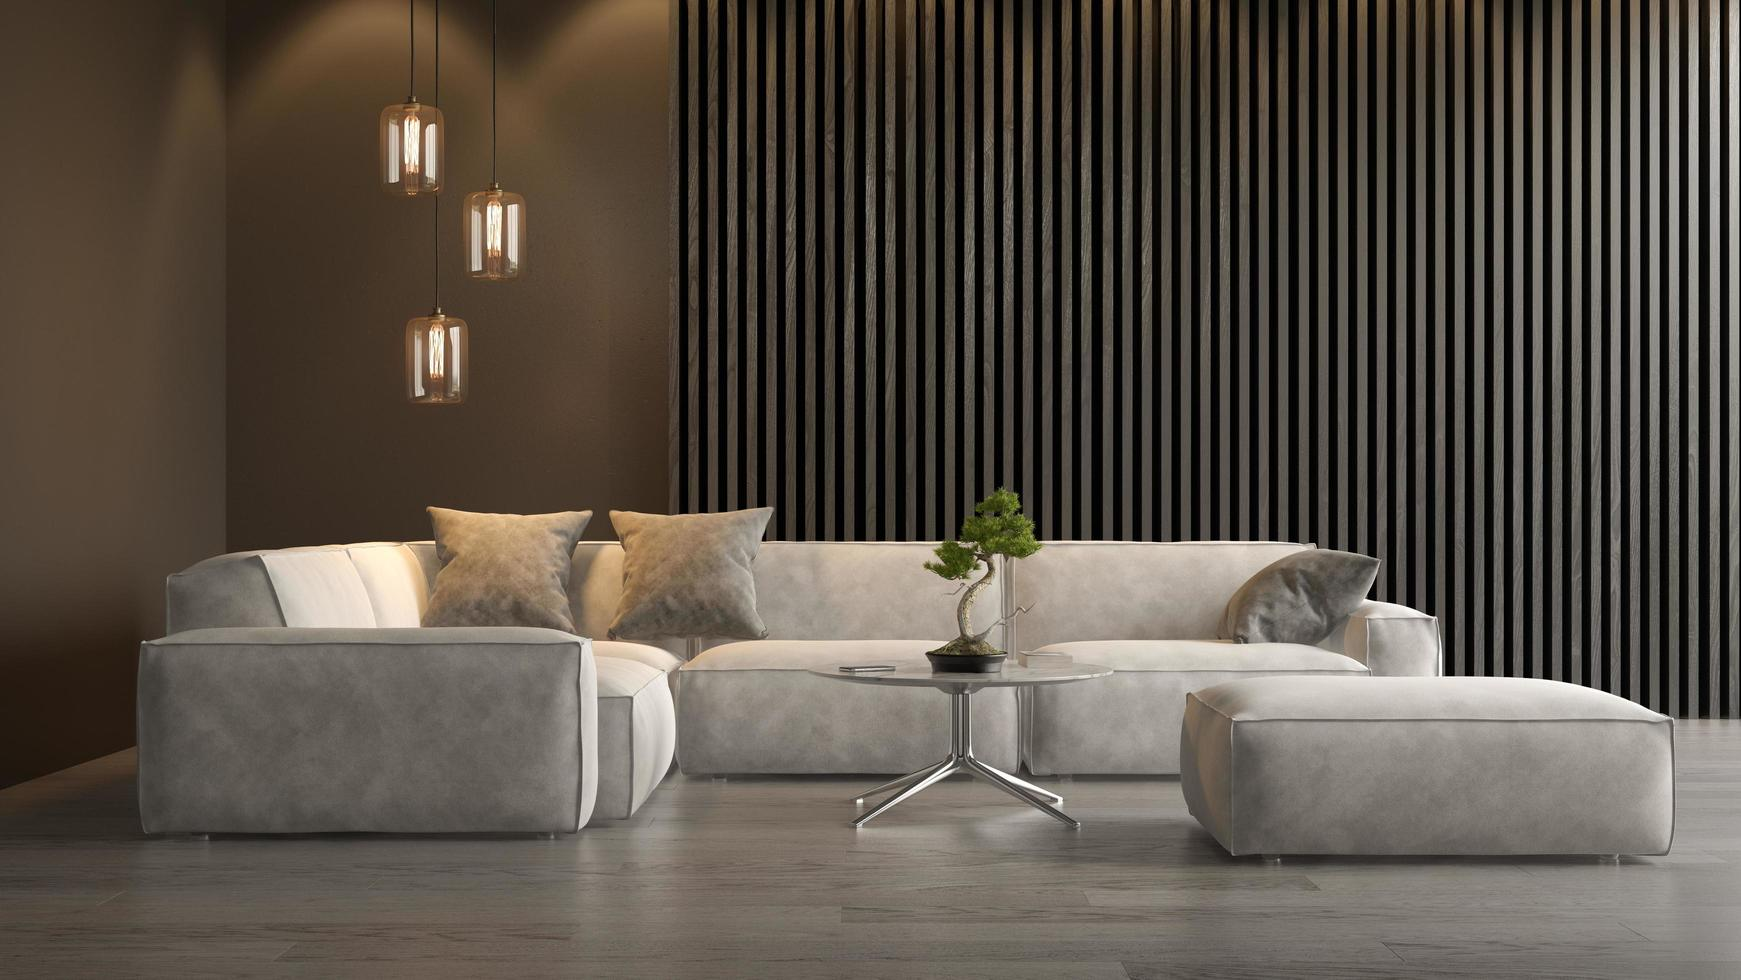 Interior of a modern living room in 3D rendering photo